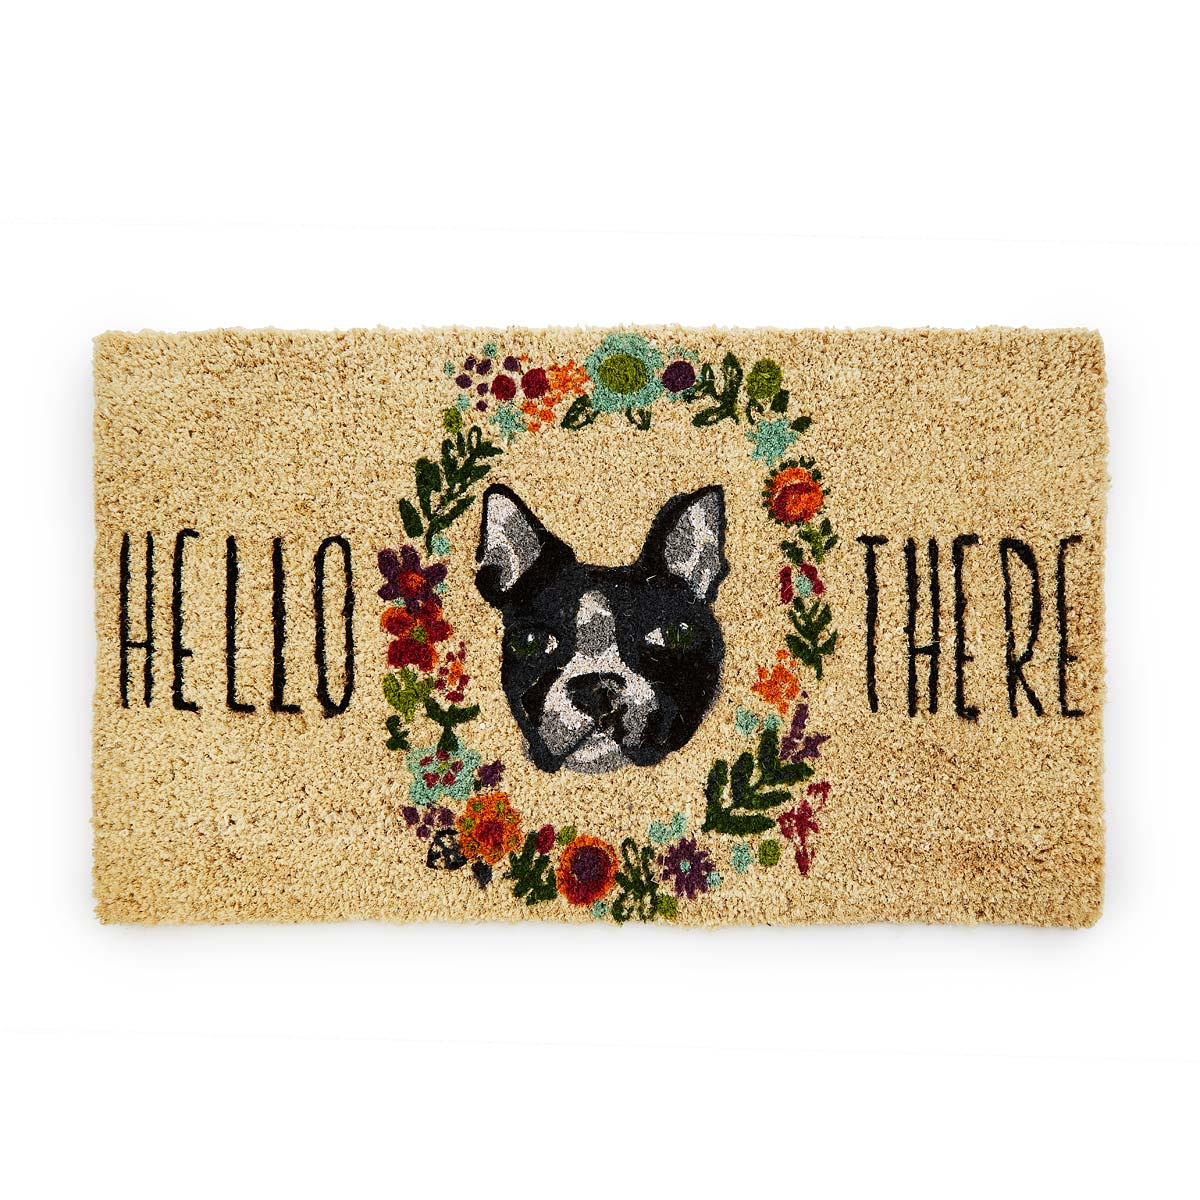 Gentil Fur And Flowers Dog Doormat 1 Thumbnail